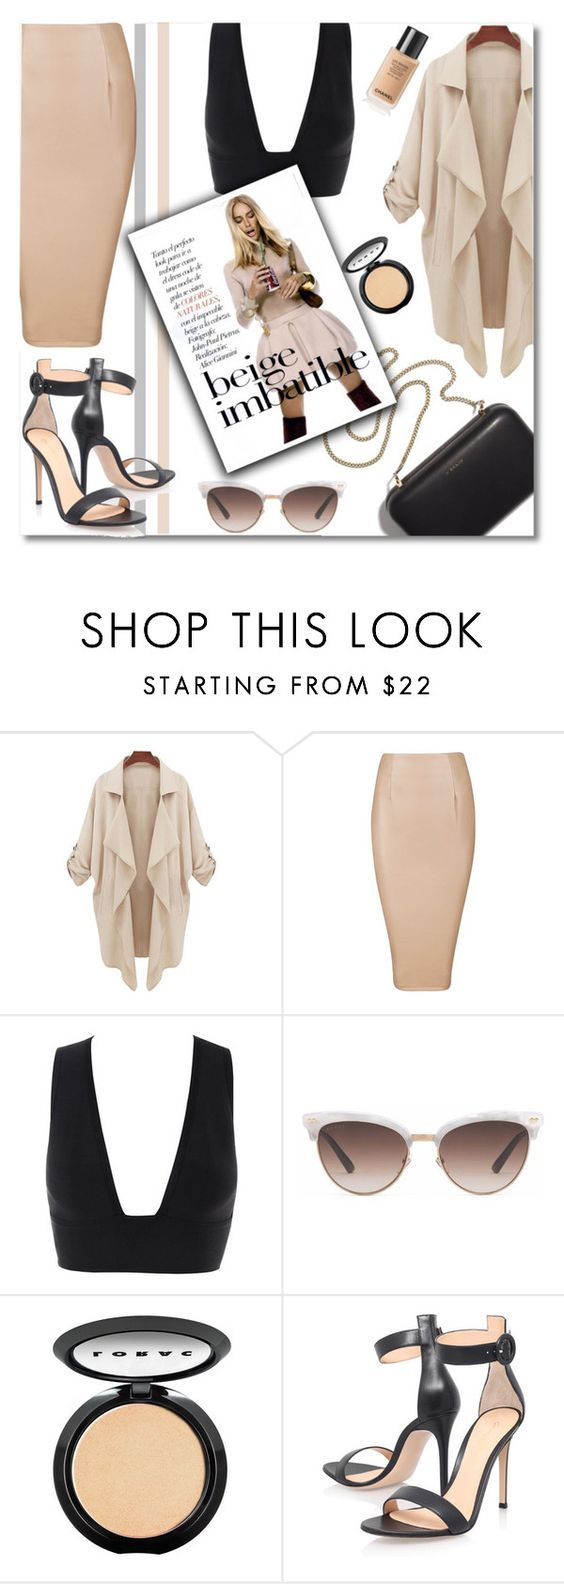 """#329"" by anilovic ❤ liked on Polyvore featuring Clare V., Gucci, LORAC, Gianvito Rossi and beige"